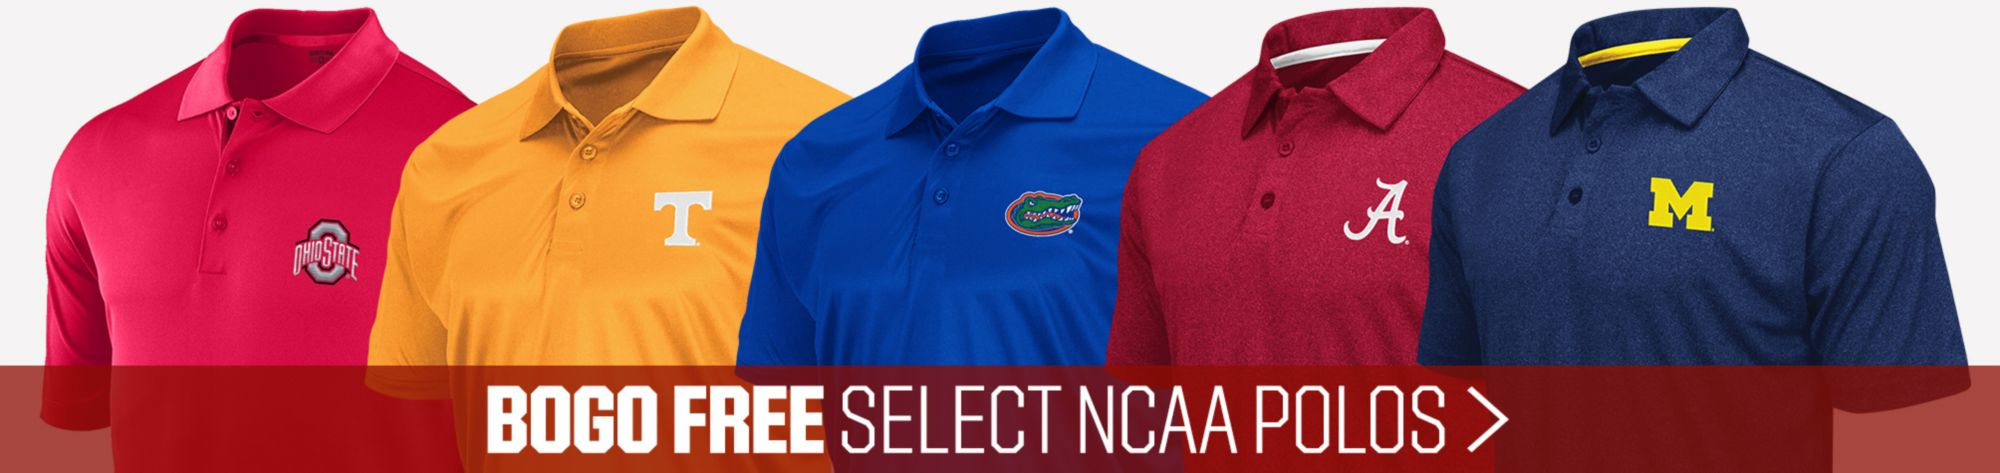 BOGO on Select NCAA Polos